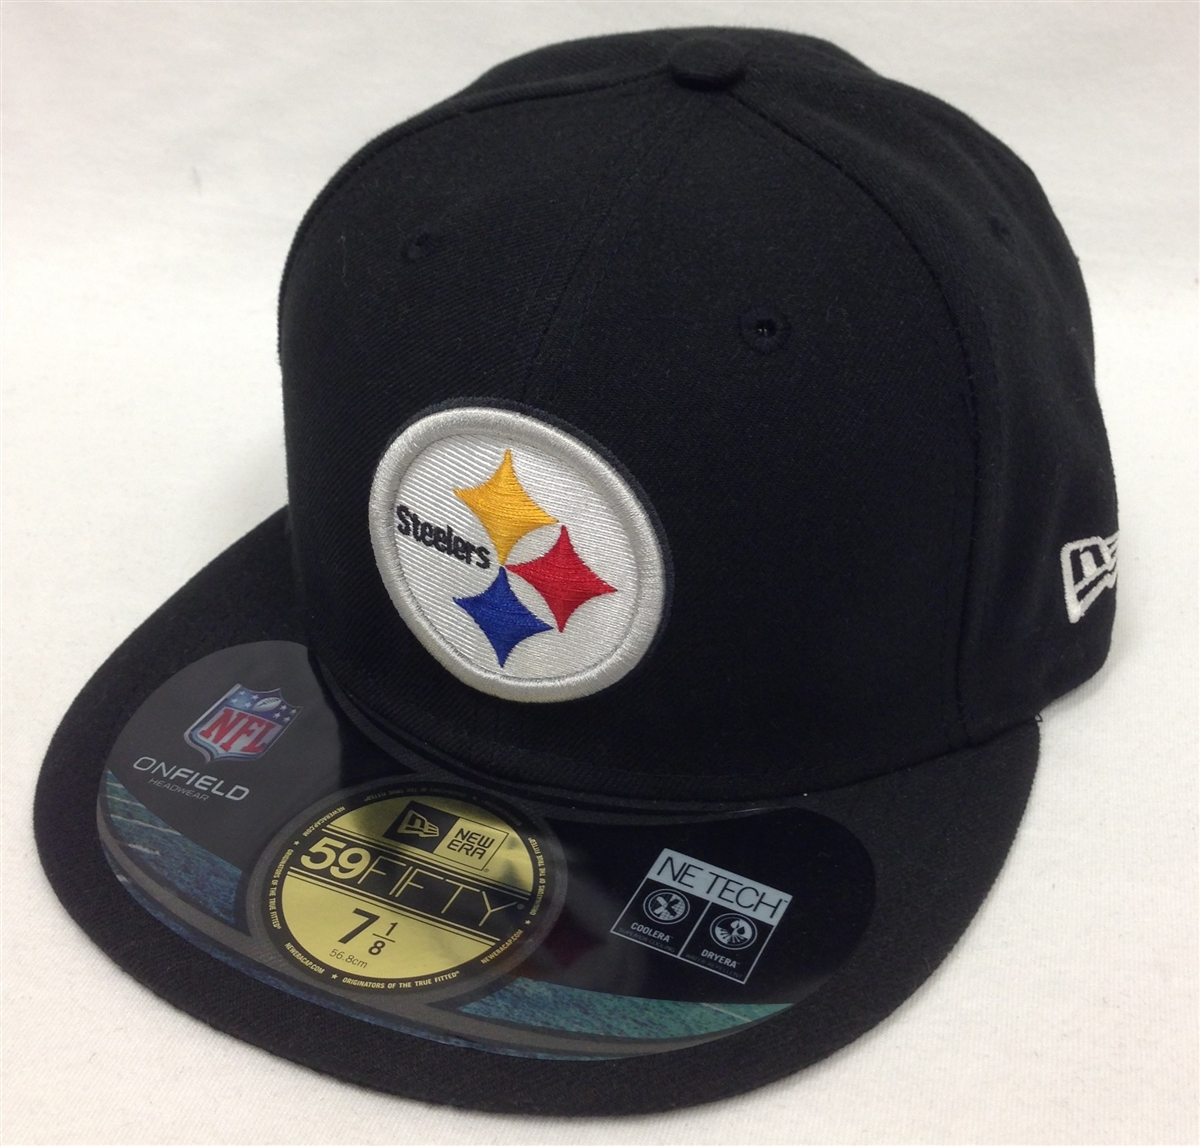 8f0dfbff4 New Era 59Fifty Onfield Pittsburgh Steelers Black Fitted Cap